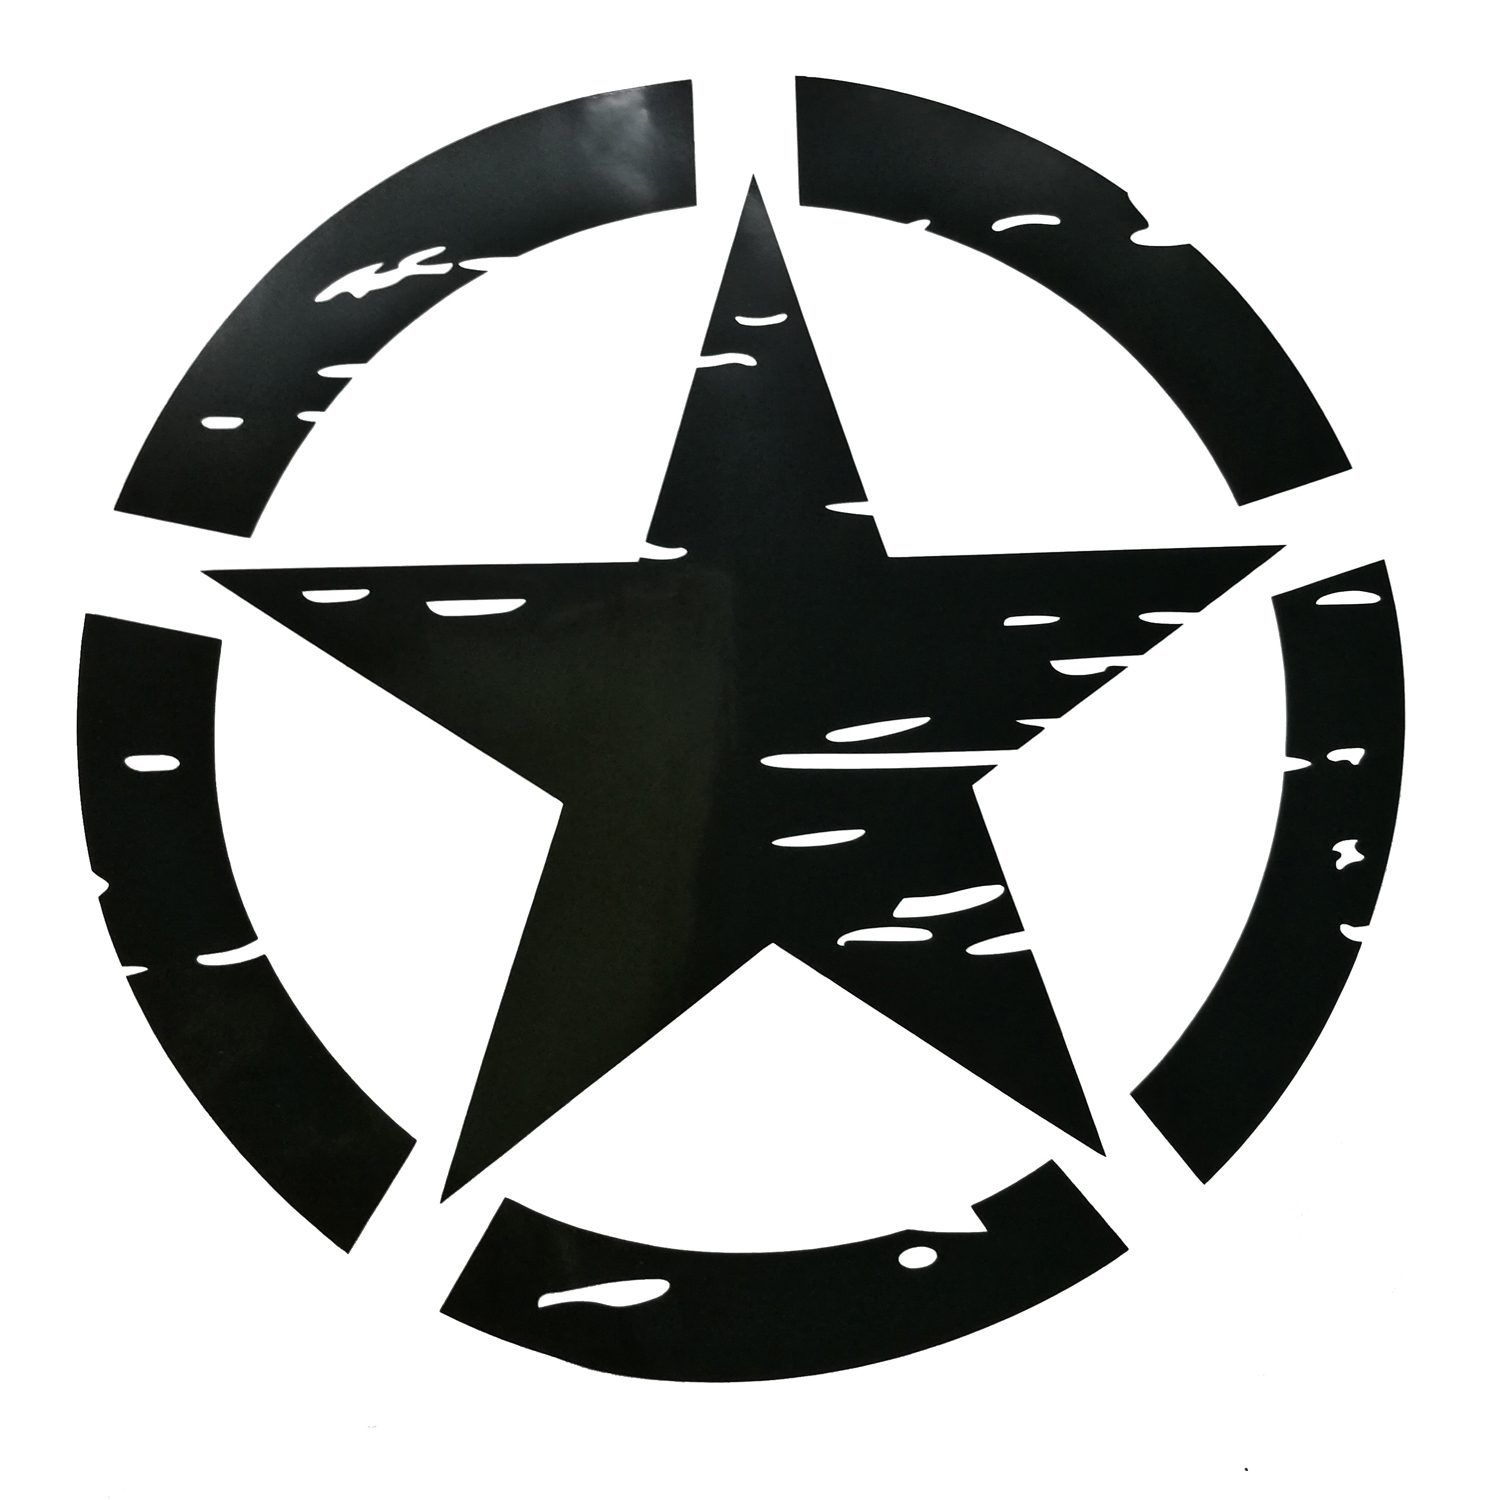 50x50cm black us army military star car truck sticker decal for 50x50cm black us army military star car truck sticker decal for jeep wrangler jk buycottarizona